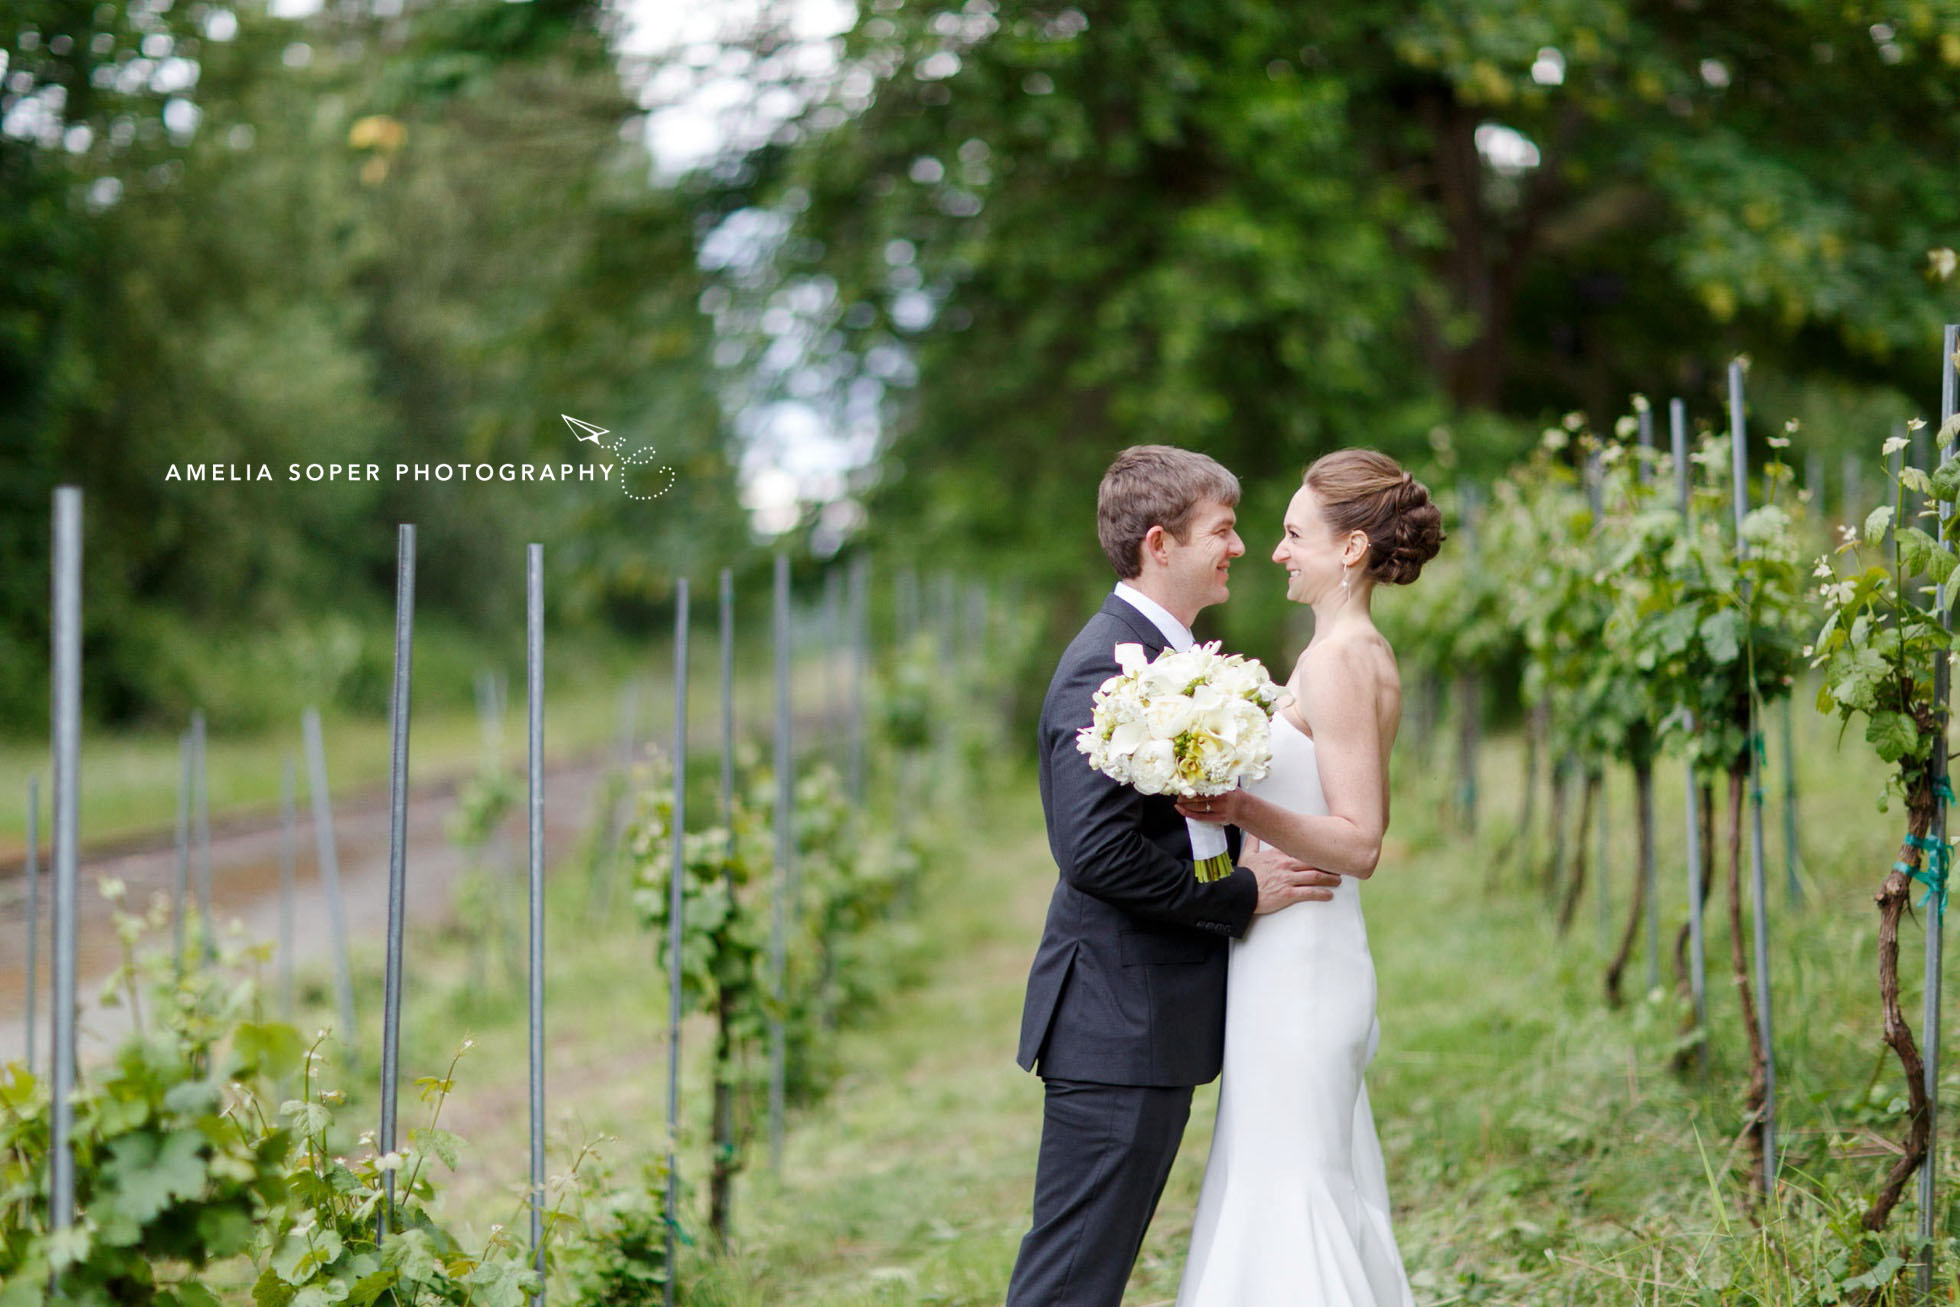 Januik Winery Wedding - Amelia Soper Photography